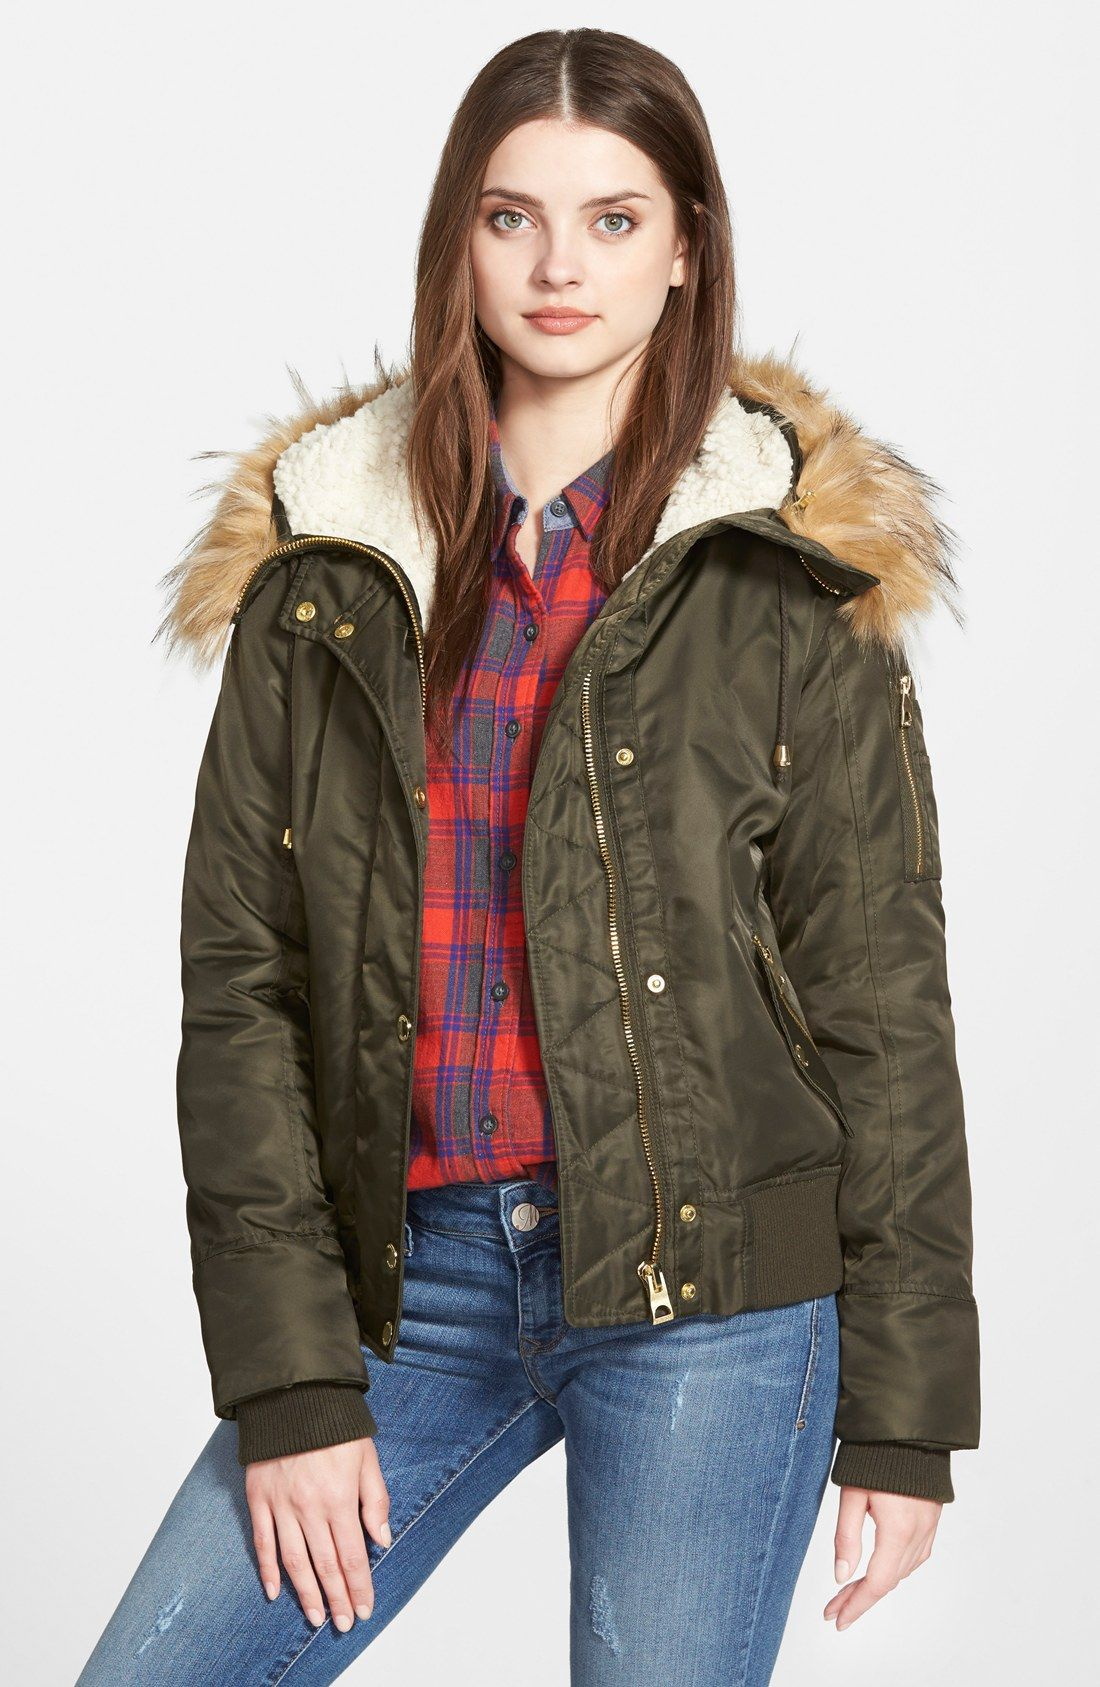 Guess Hooded Satin Bomber Jacket With Faux Fur Trim Faux Shearling Lining Nordstrom Bomber Jacket Satin Bomber Jacket Olive Bomber Jacket [ 1687 x 1100 Pixel ]